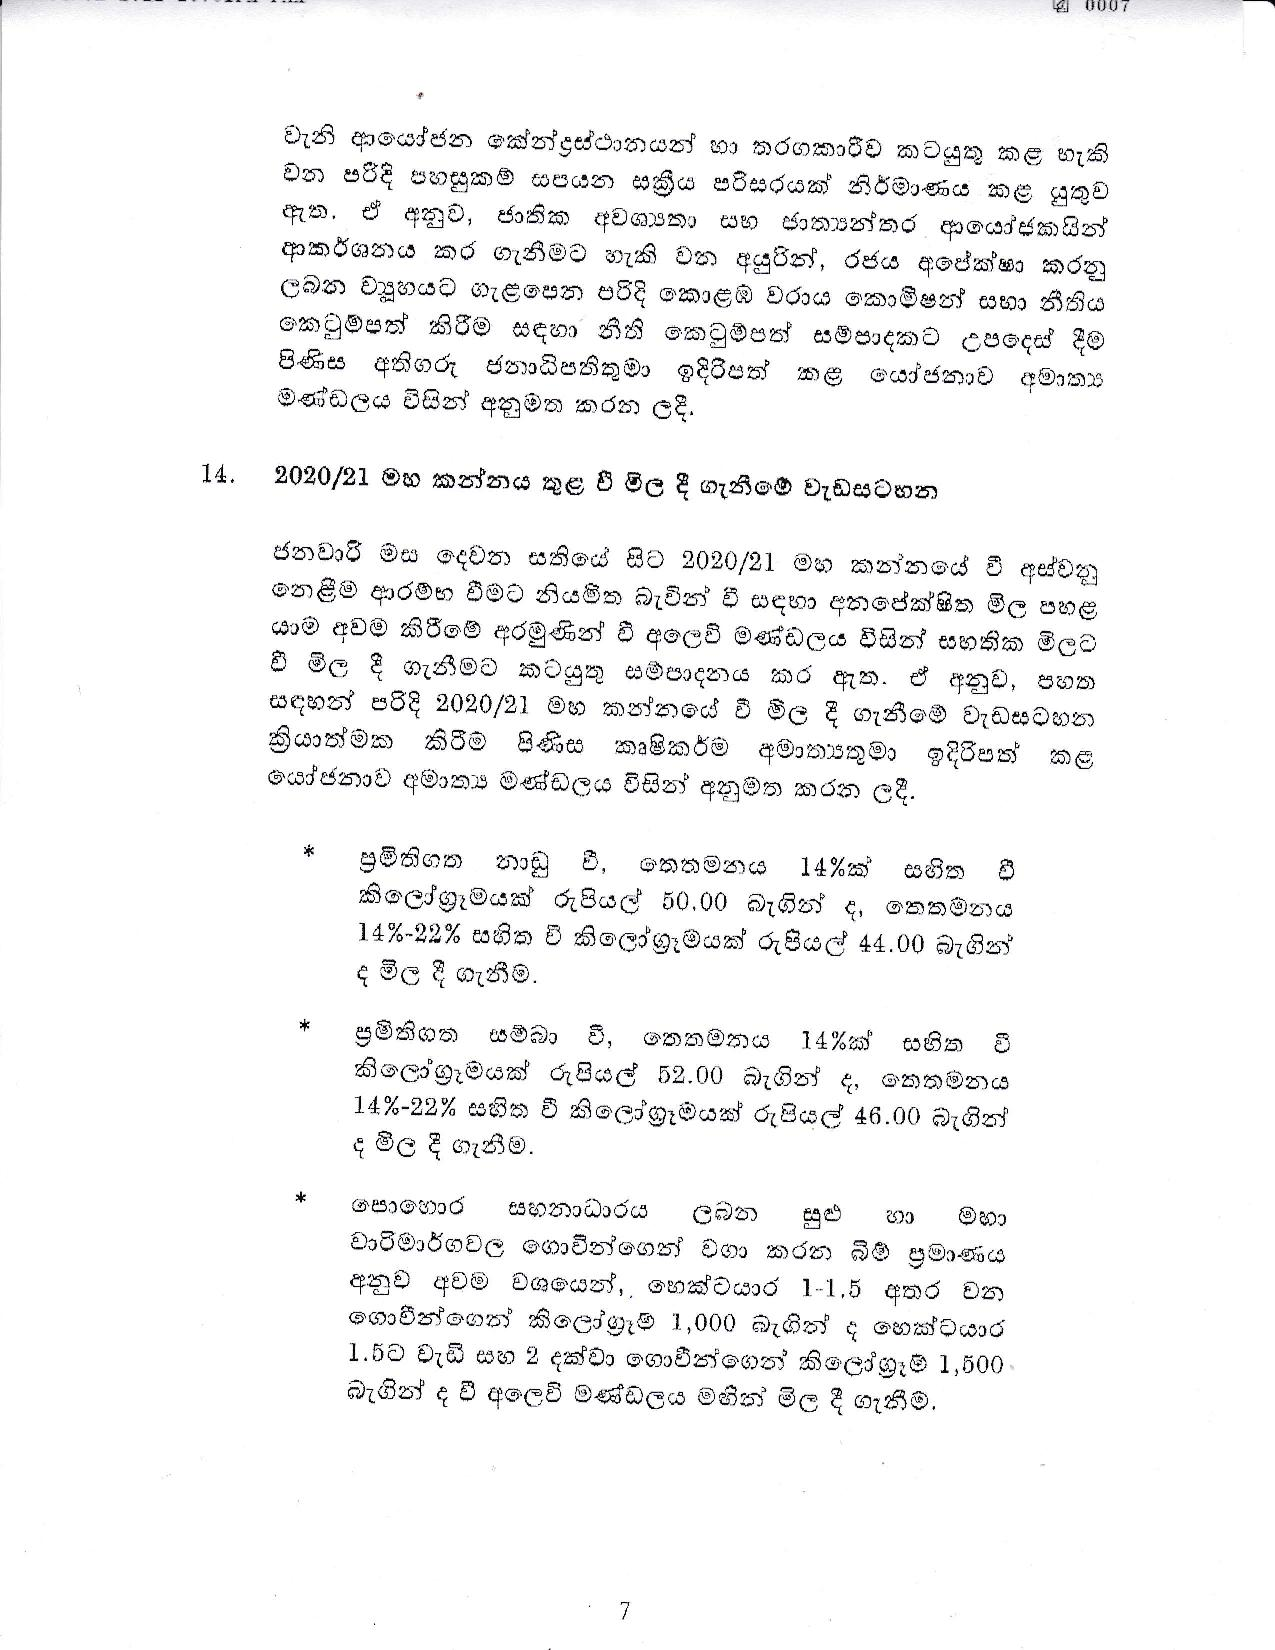 Cabinet Decision on 04.01.2021 page 007